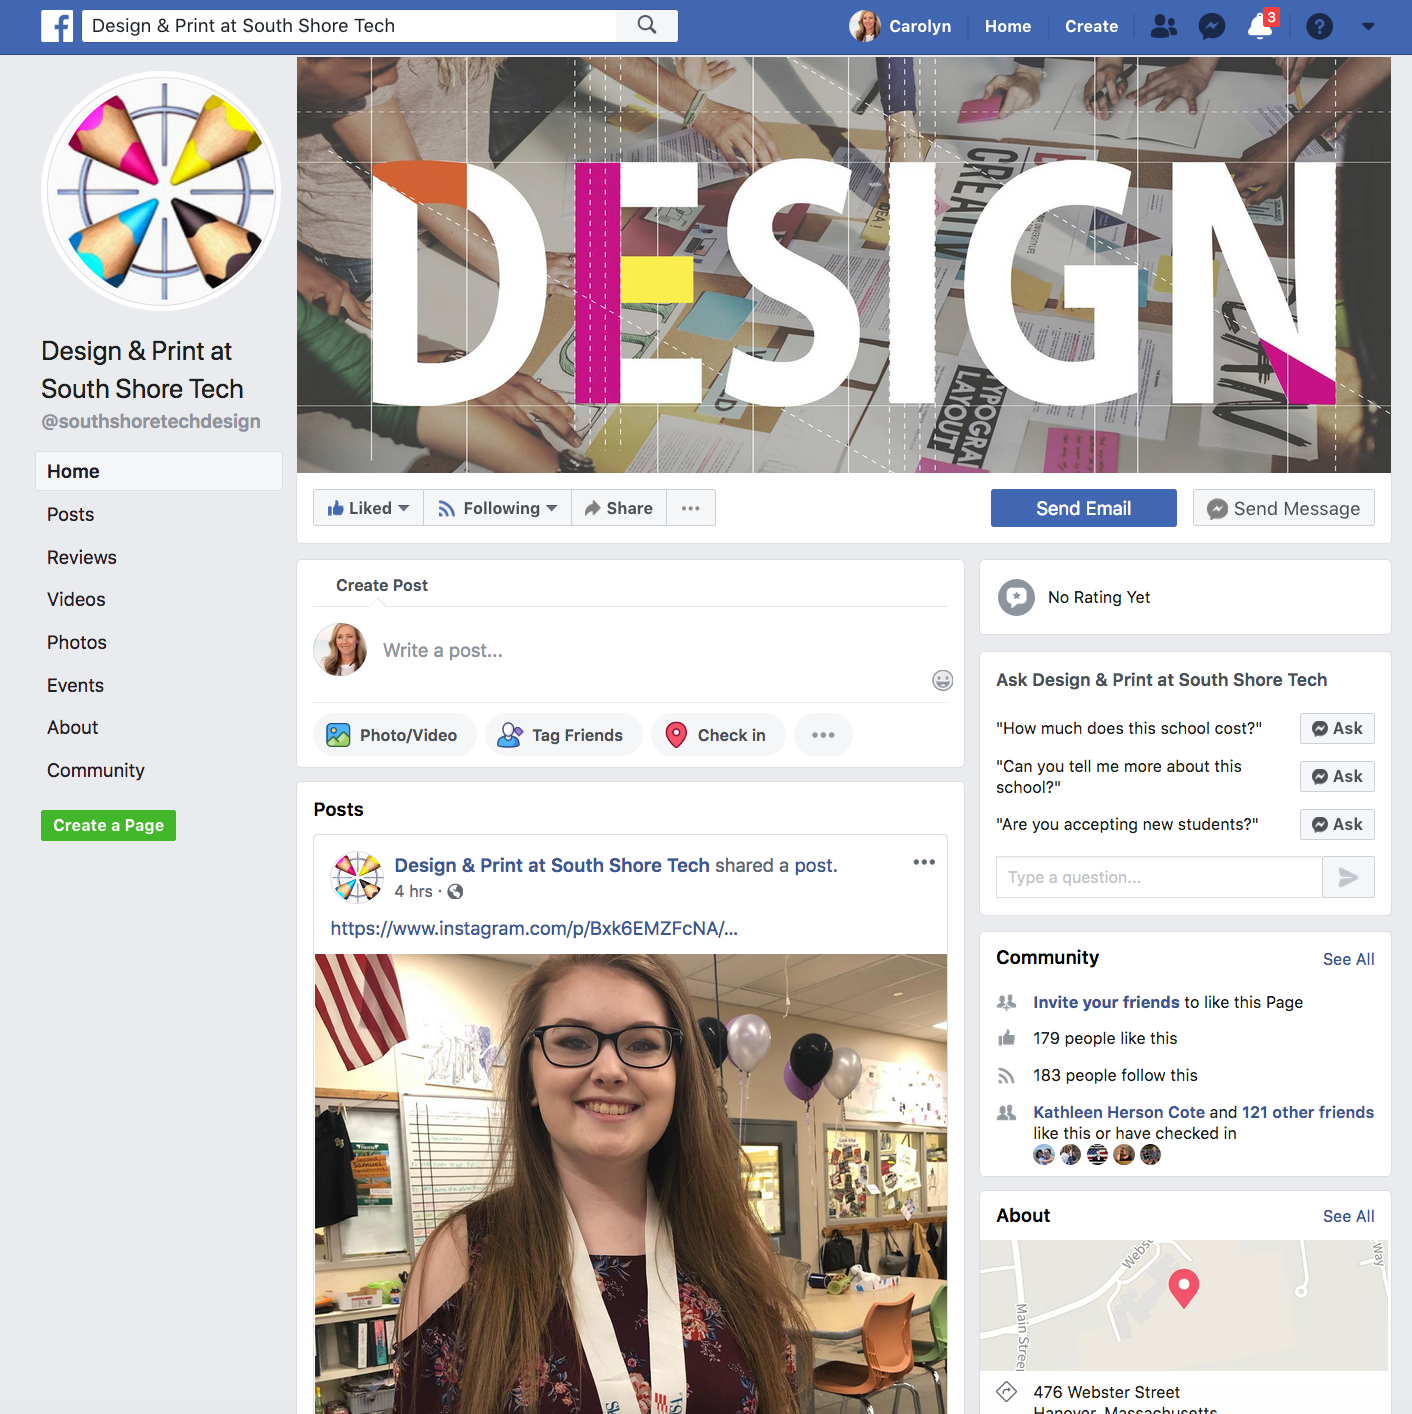 Facebook for Design Program at SST